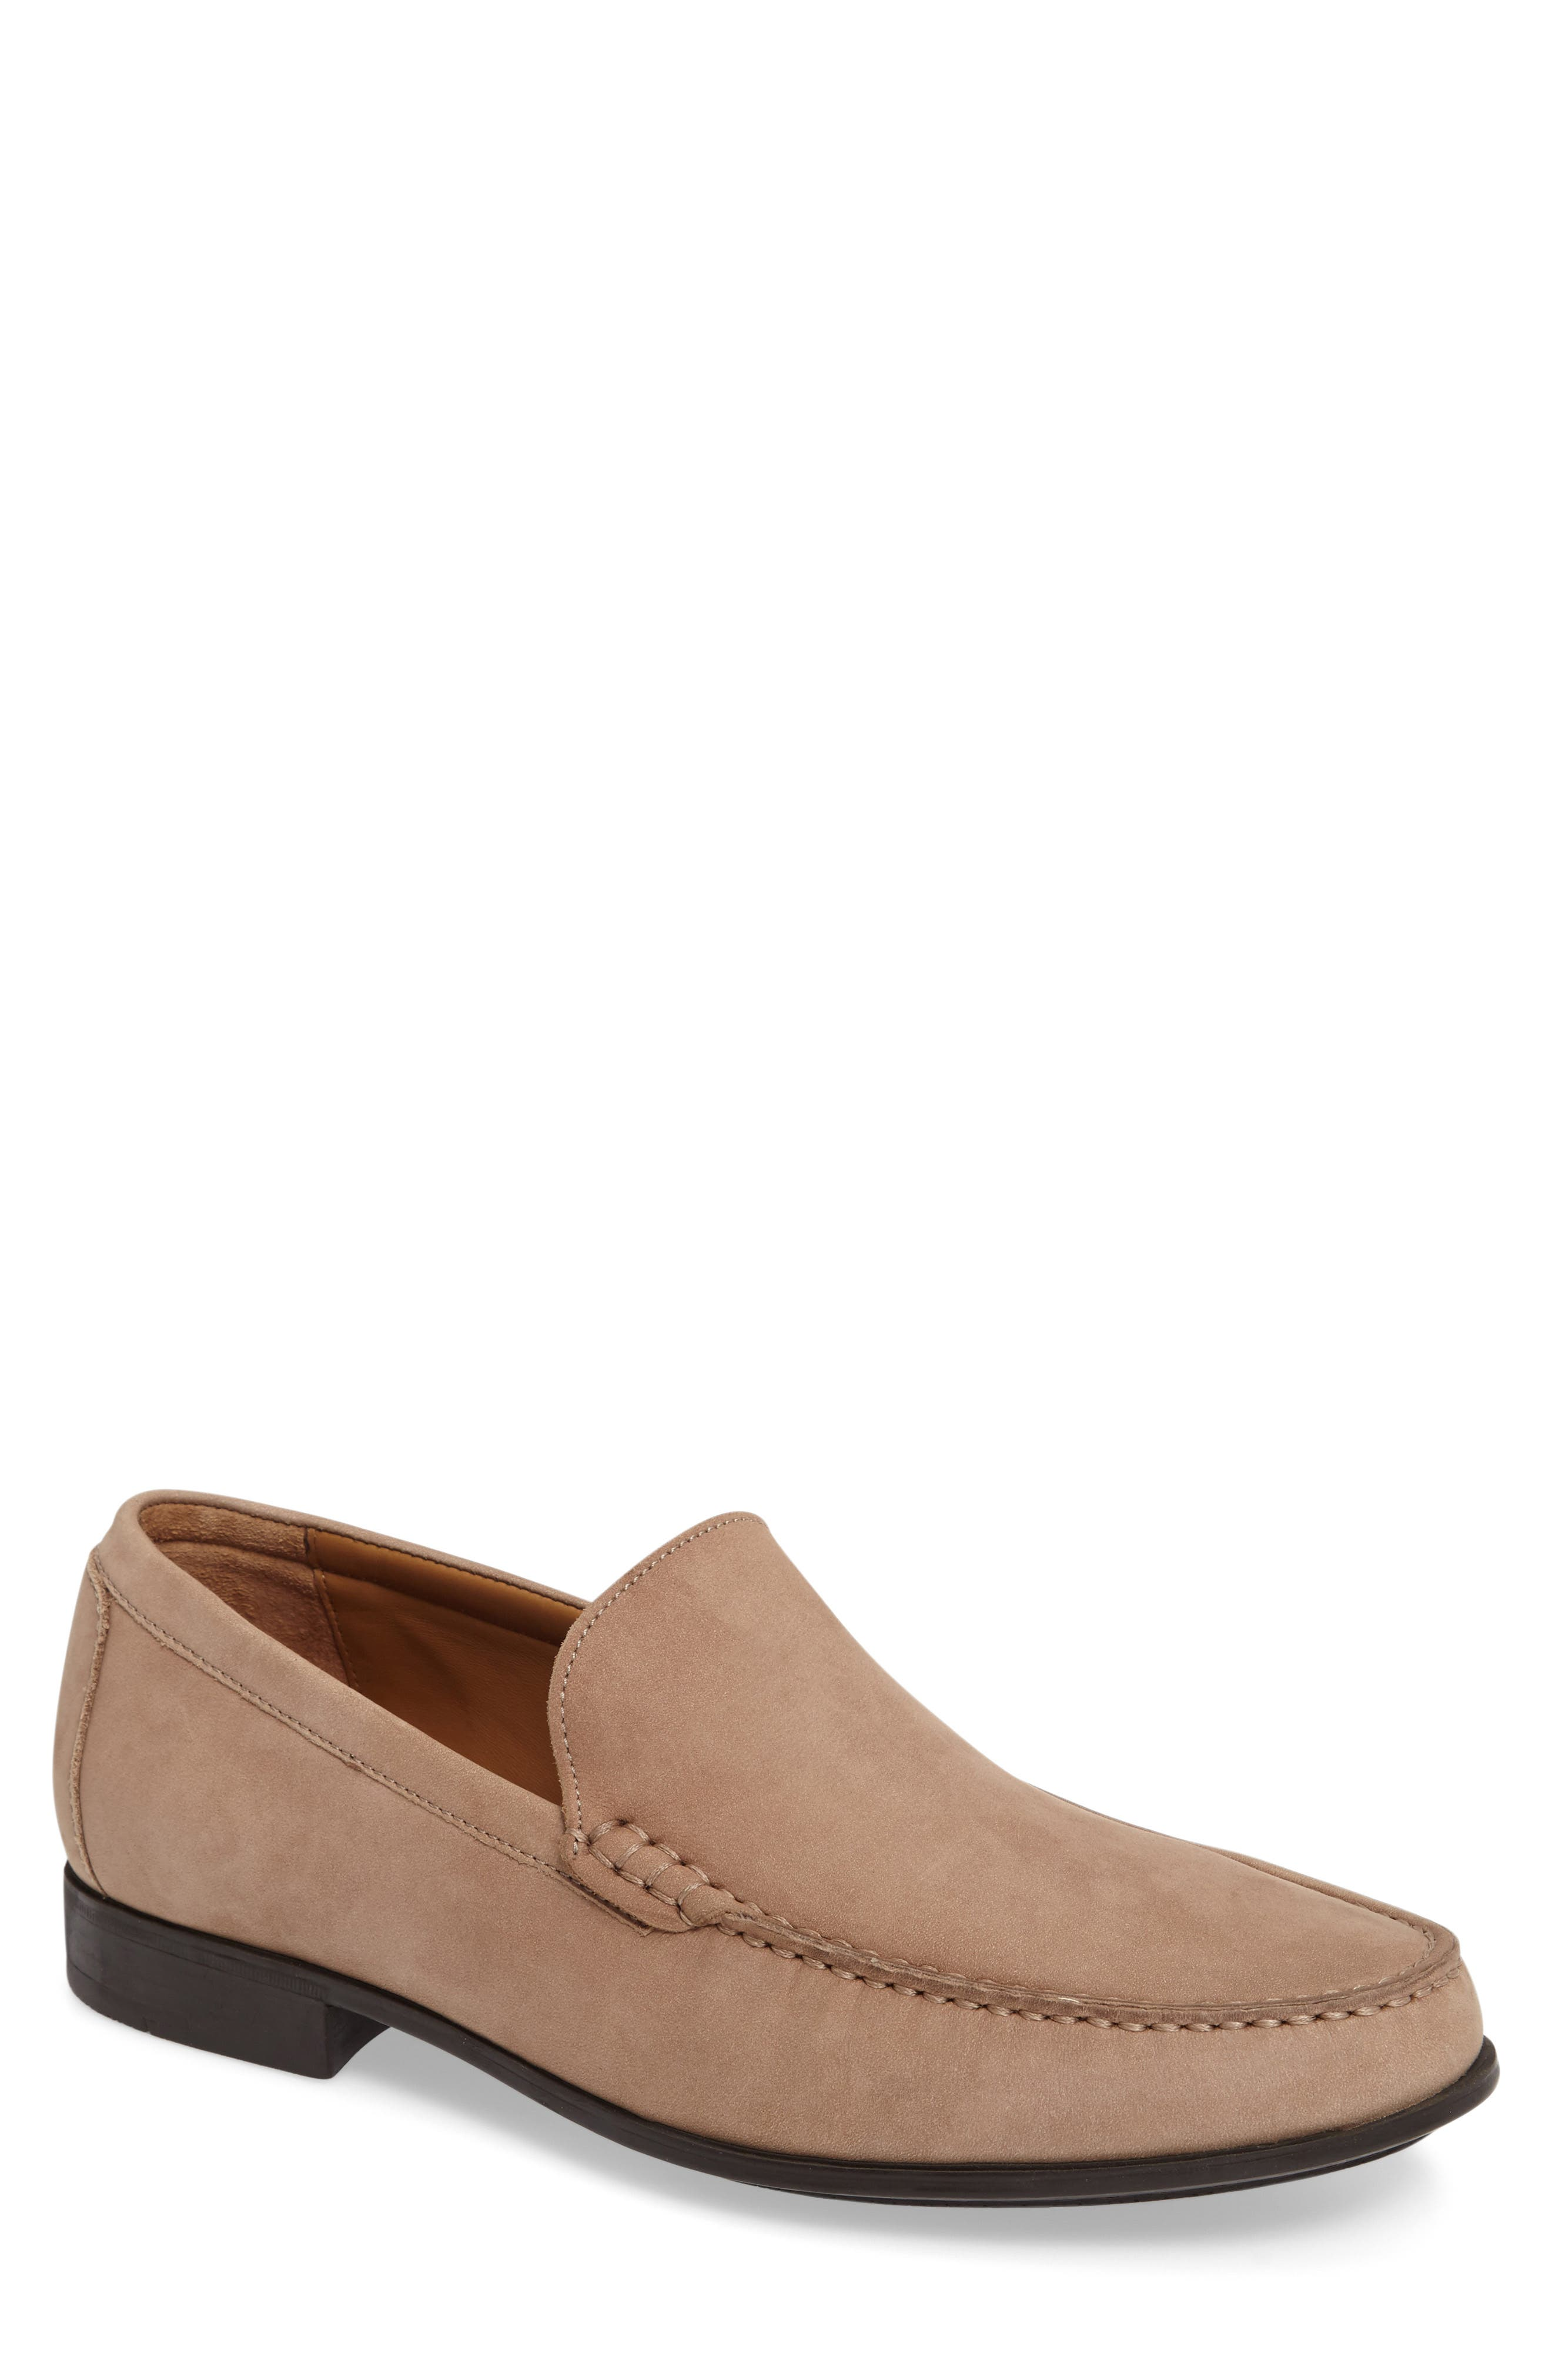 Cresswell Venetian Loafer,                             Main thumbnail 2, color,